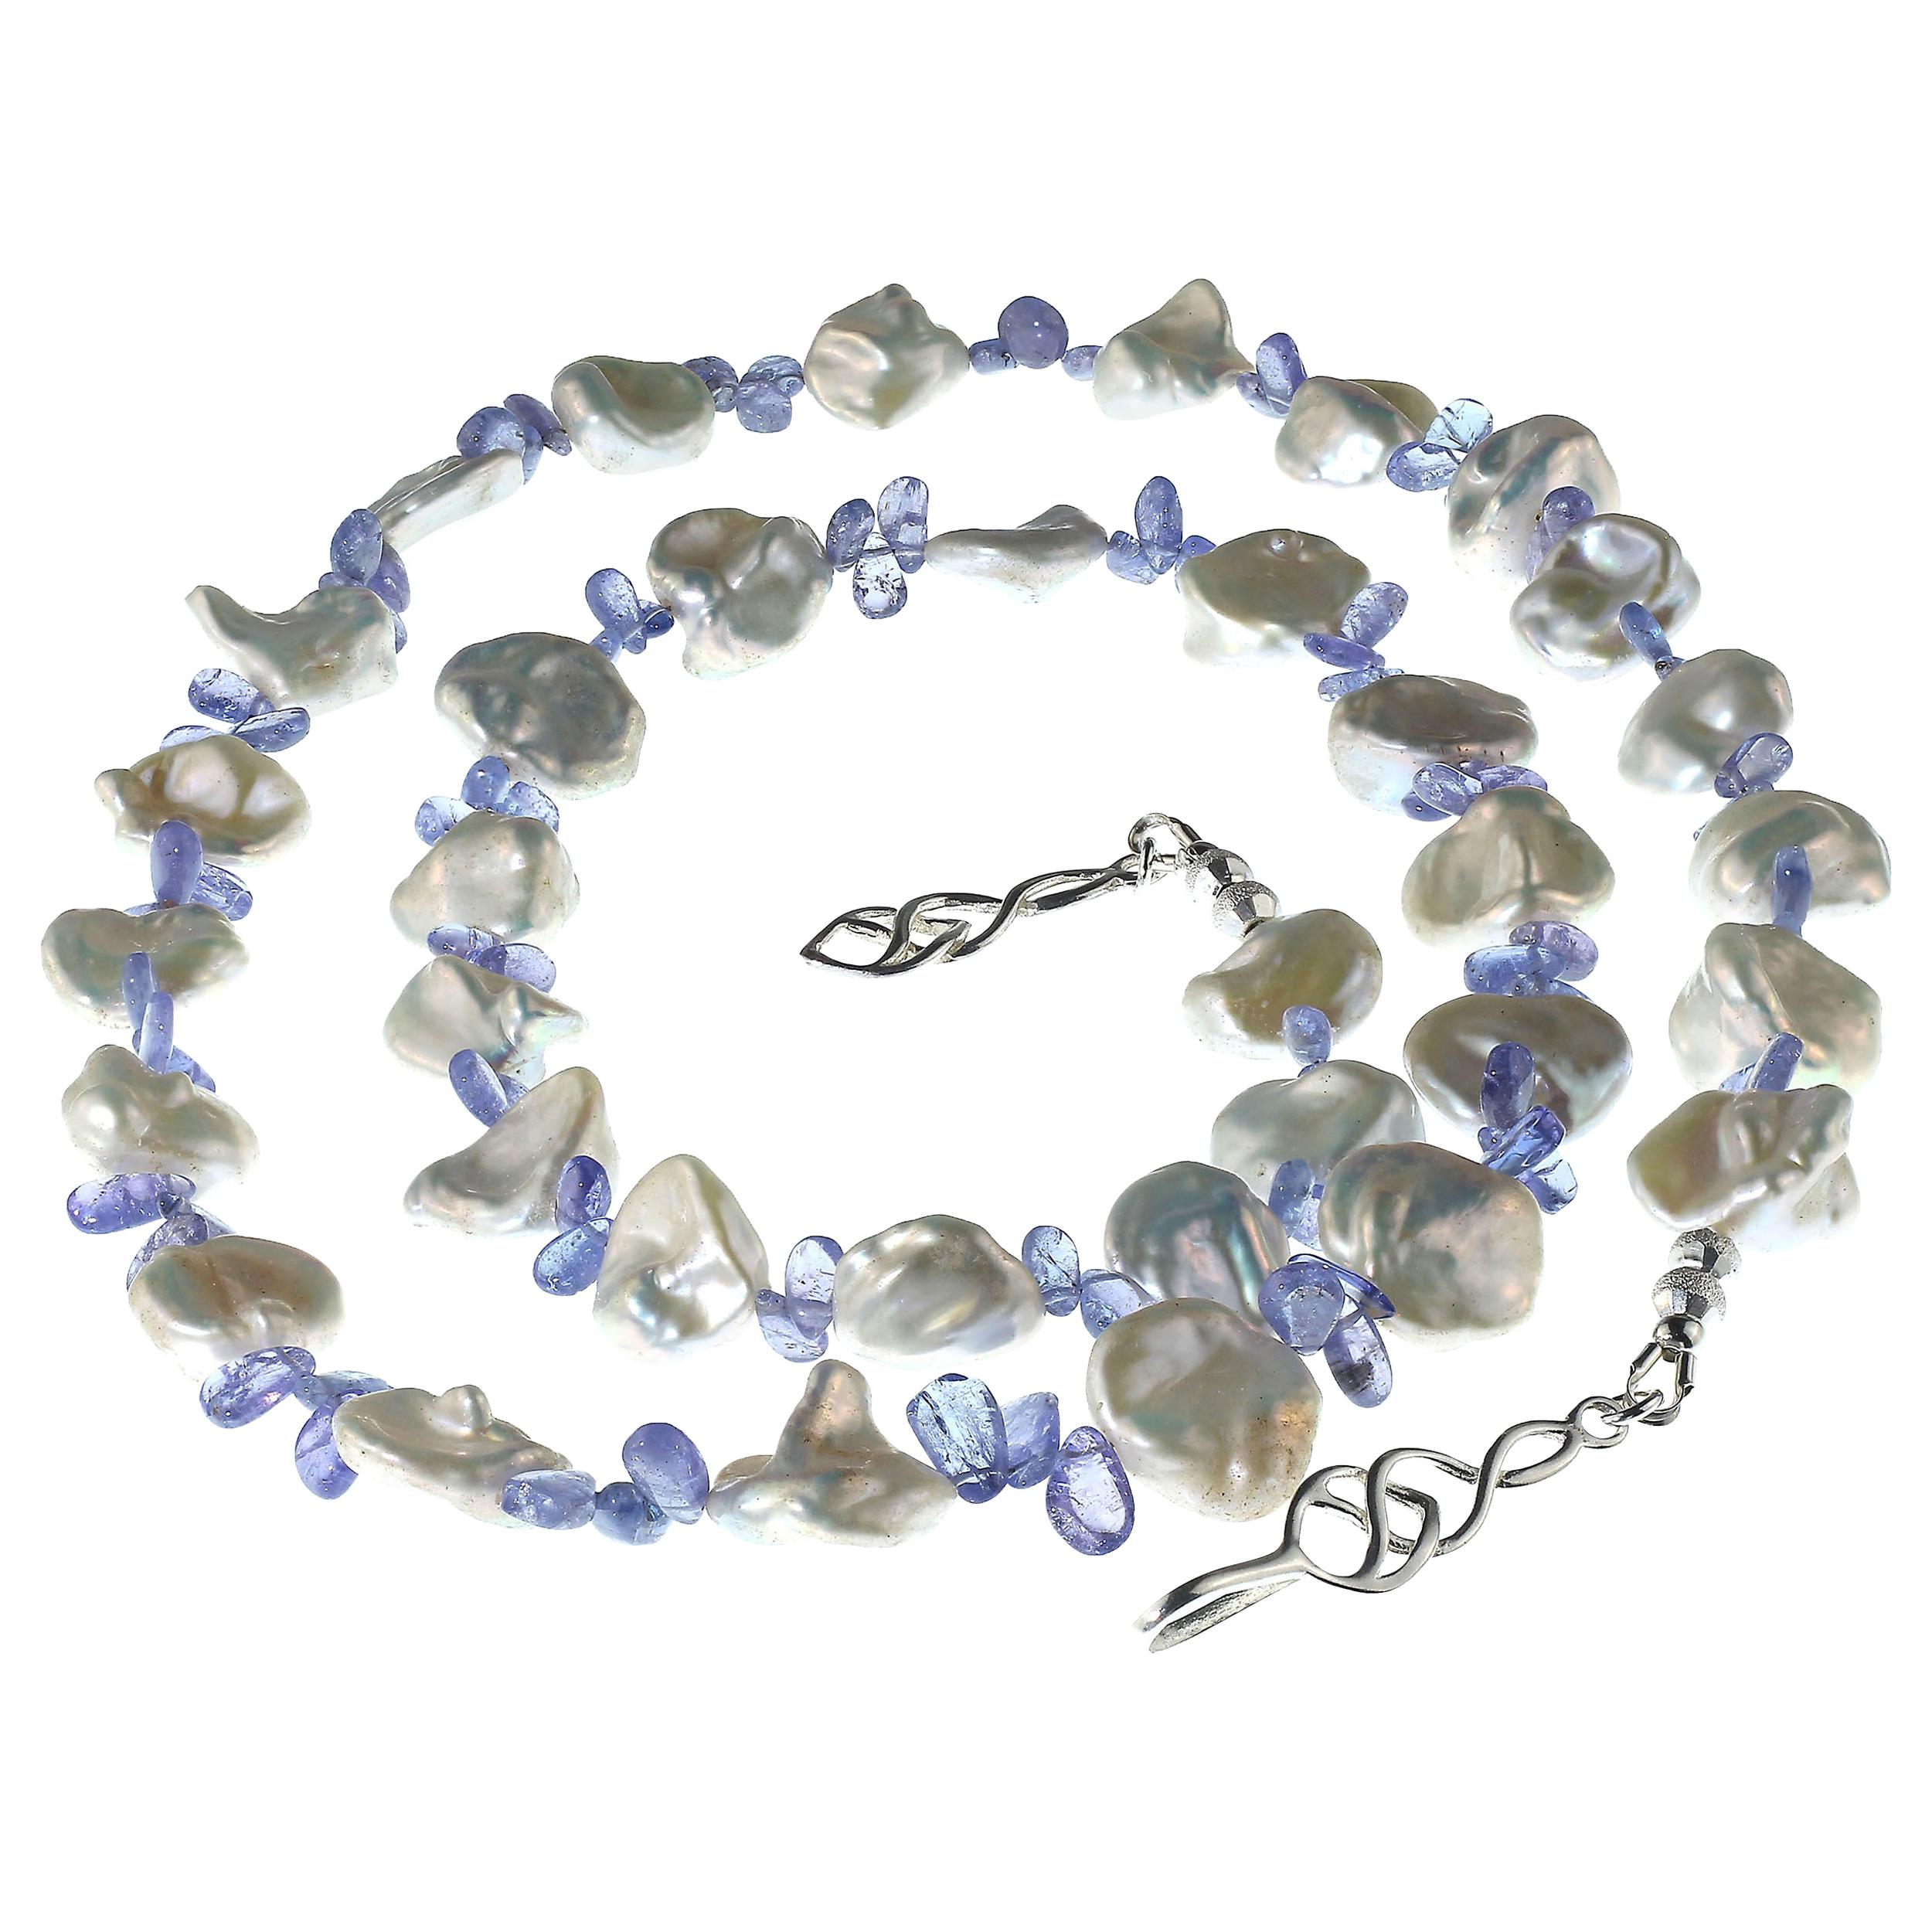 Gemjunky Necklace of White Keshi Pearls and Sparkling Tanzanite  June Birthstone